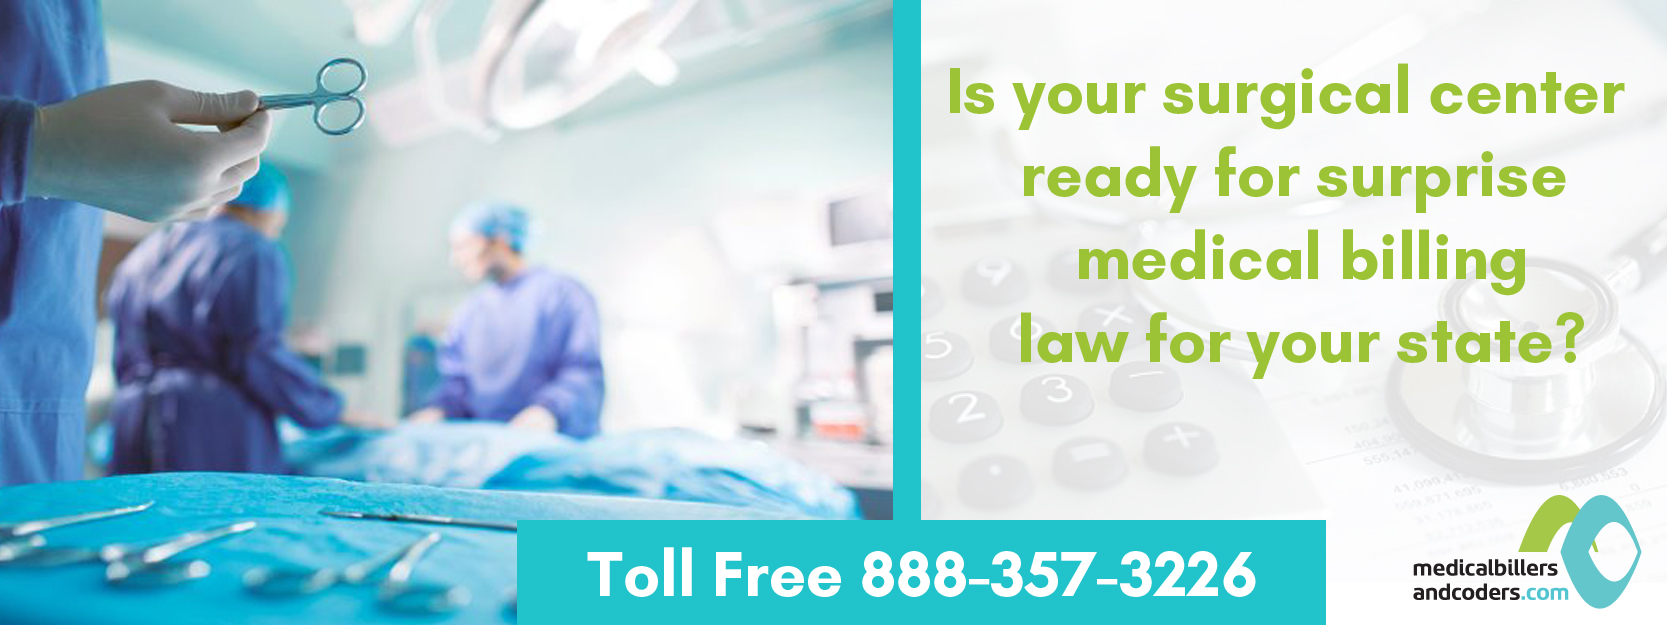 Is Your Surgical Center Ready for Surprise Medical Billing Law for Your State?